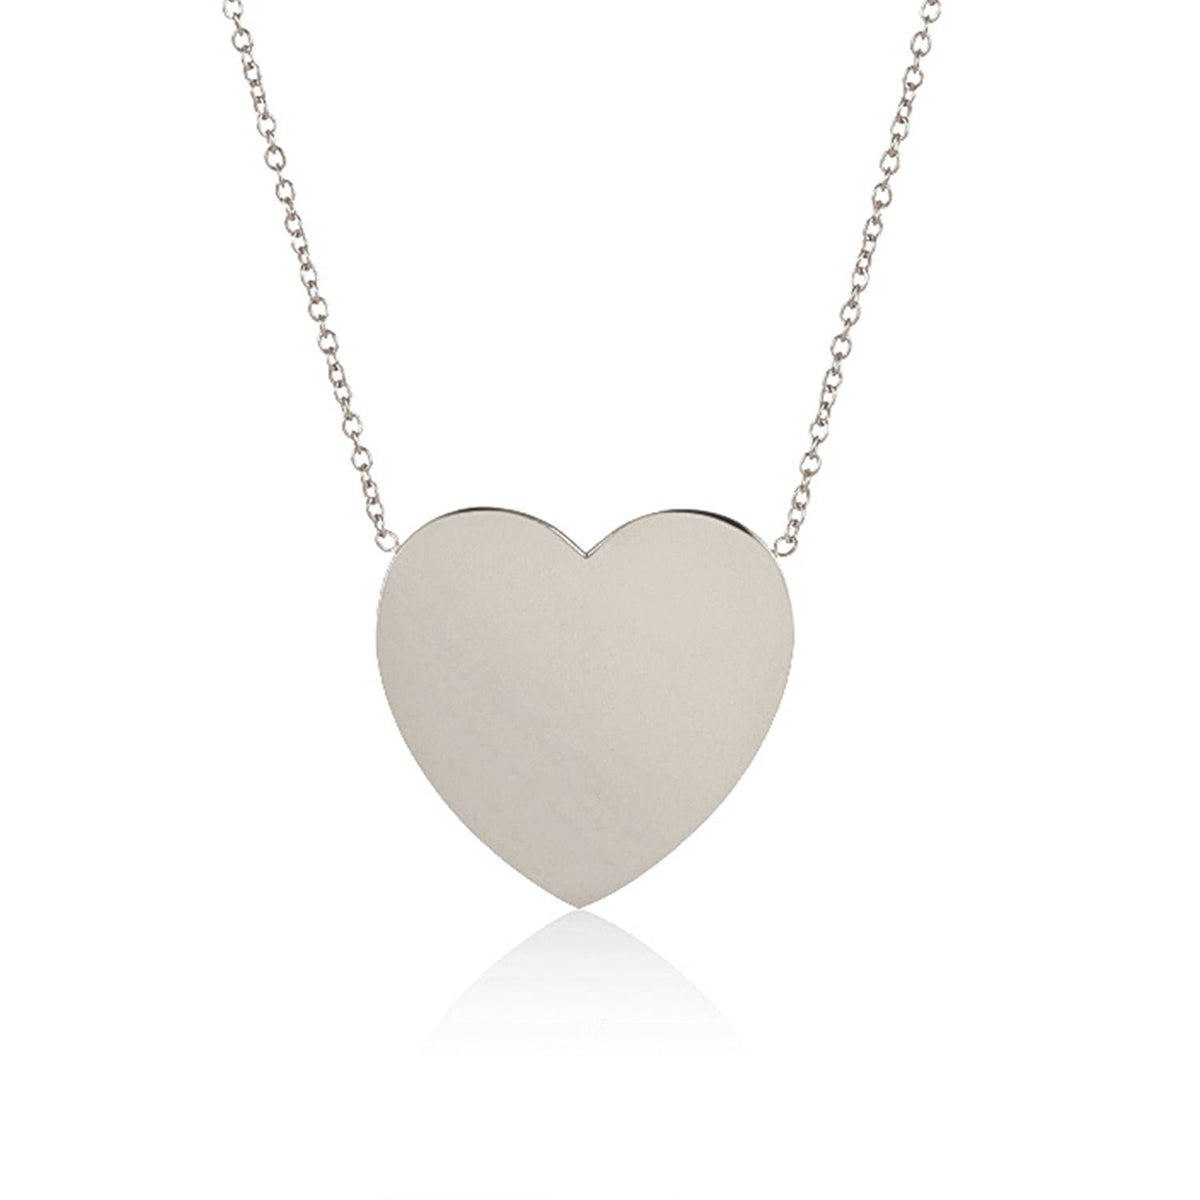 """You Have My Heart"" Solid Sterling Silver Necklace - PRE ORDER: Back in Stock 5/15-6/1!"